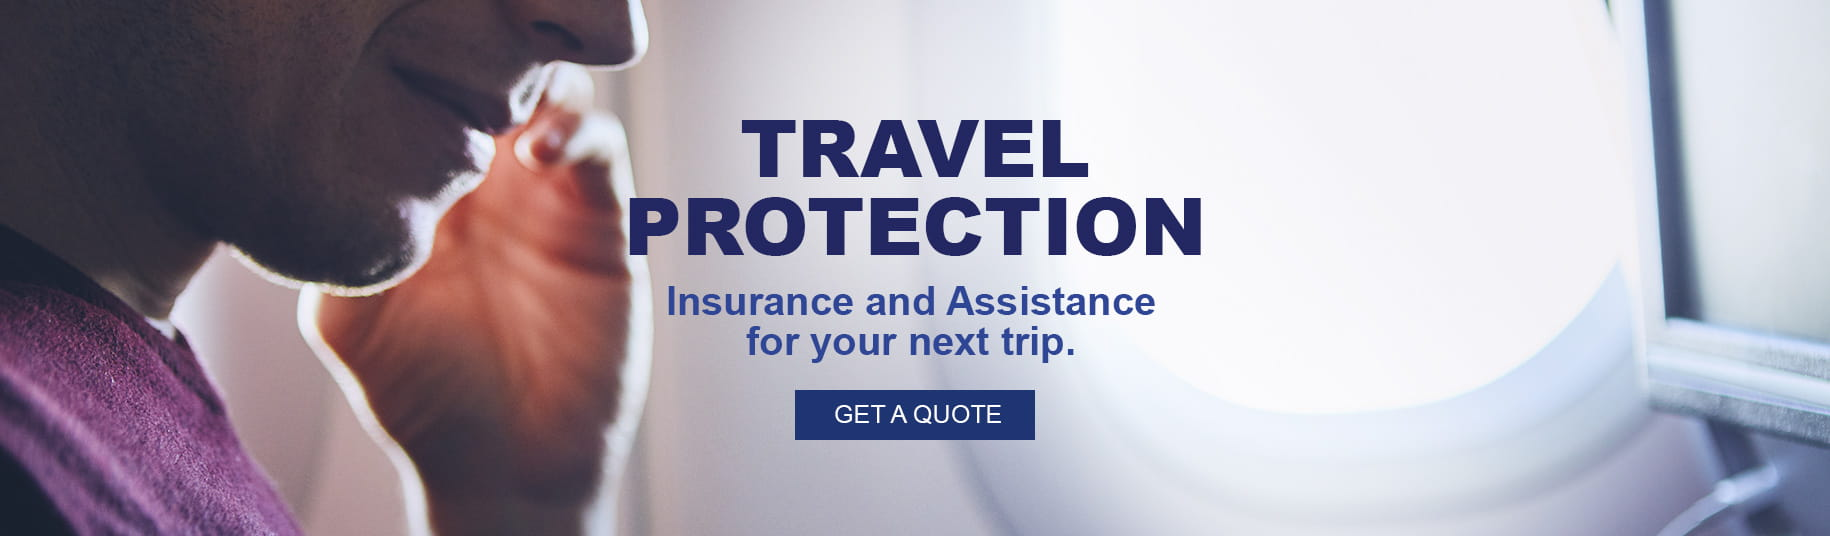 Personal membership - Travel insurance and assistance | International SOS